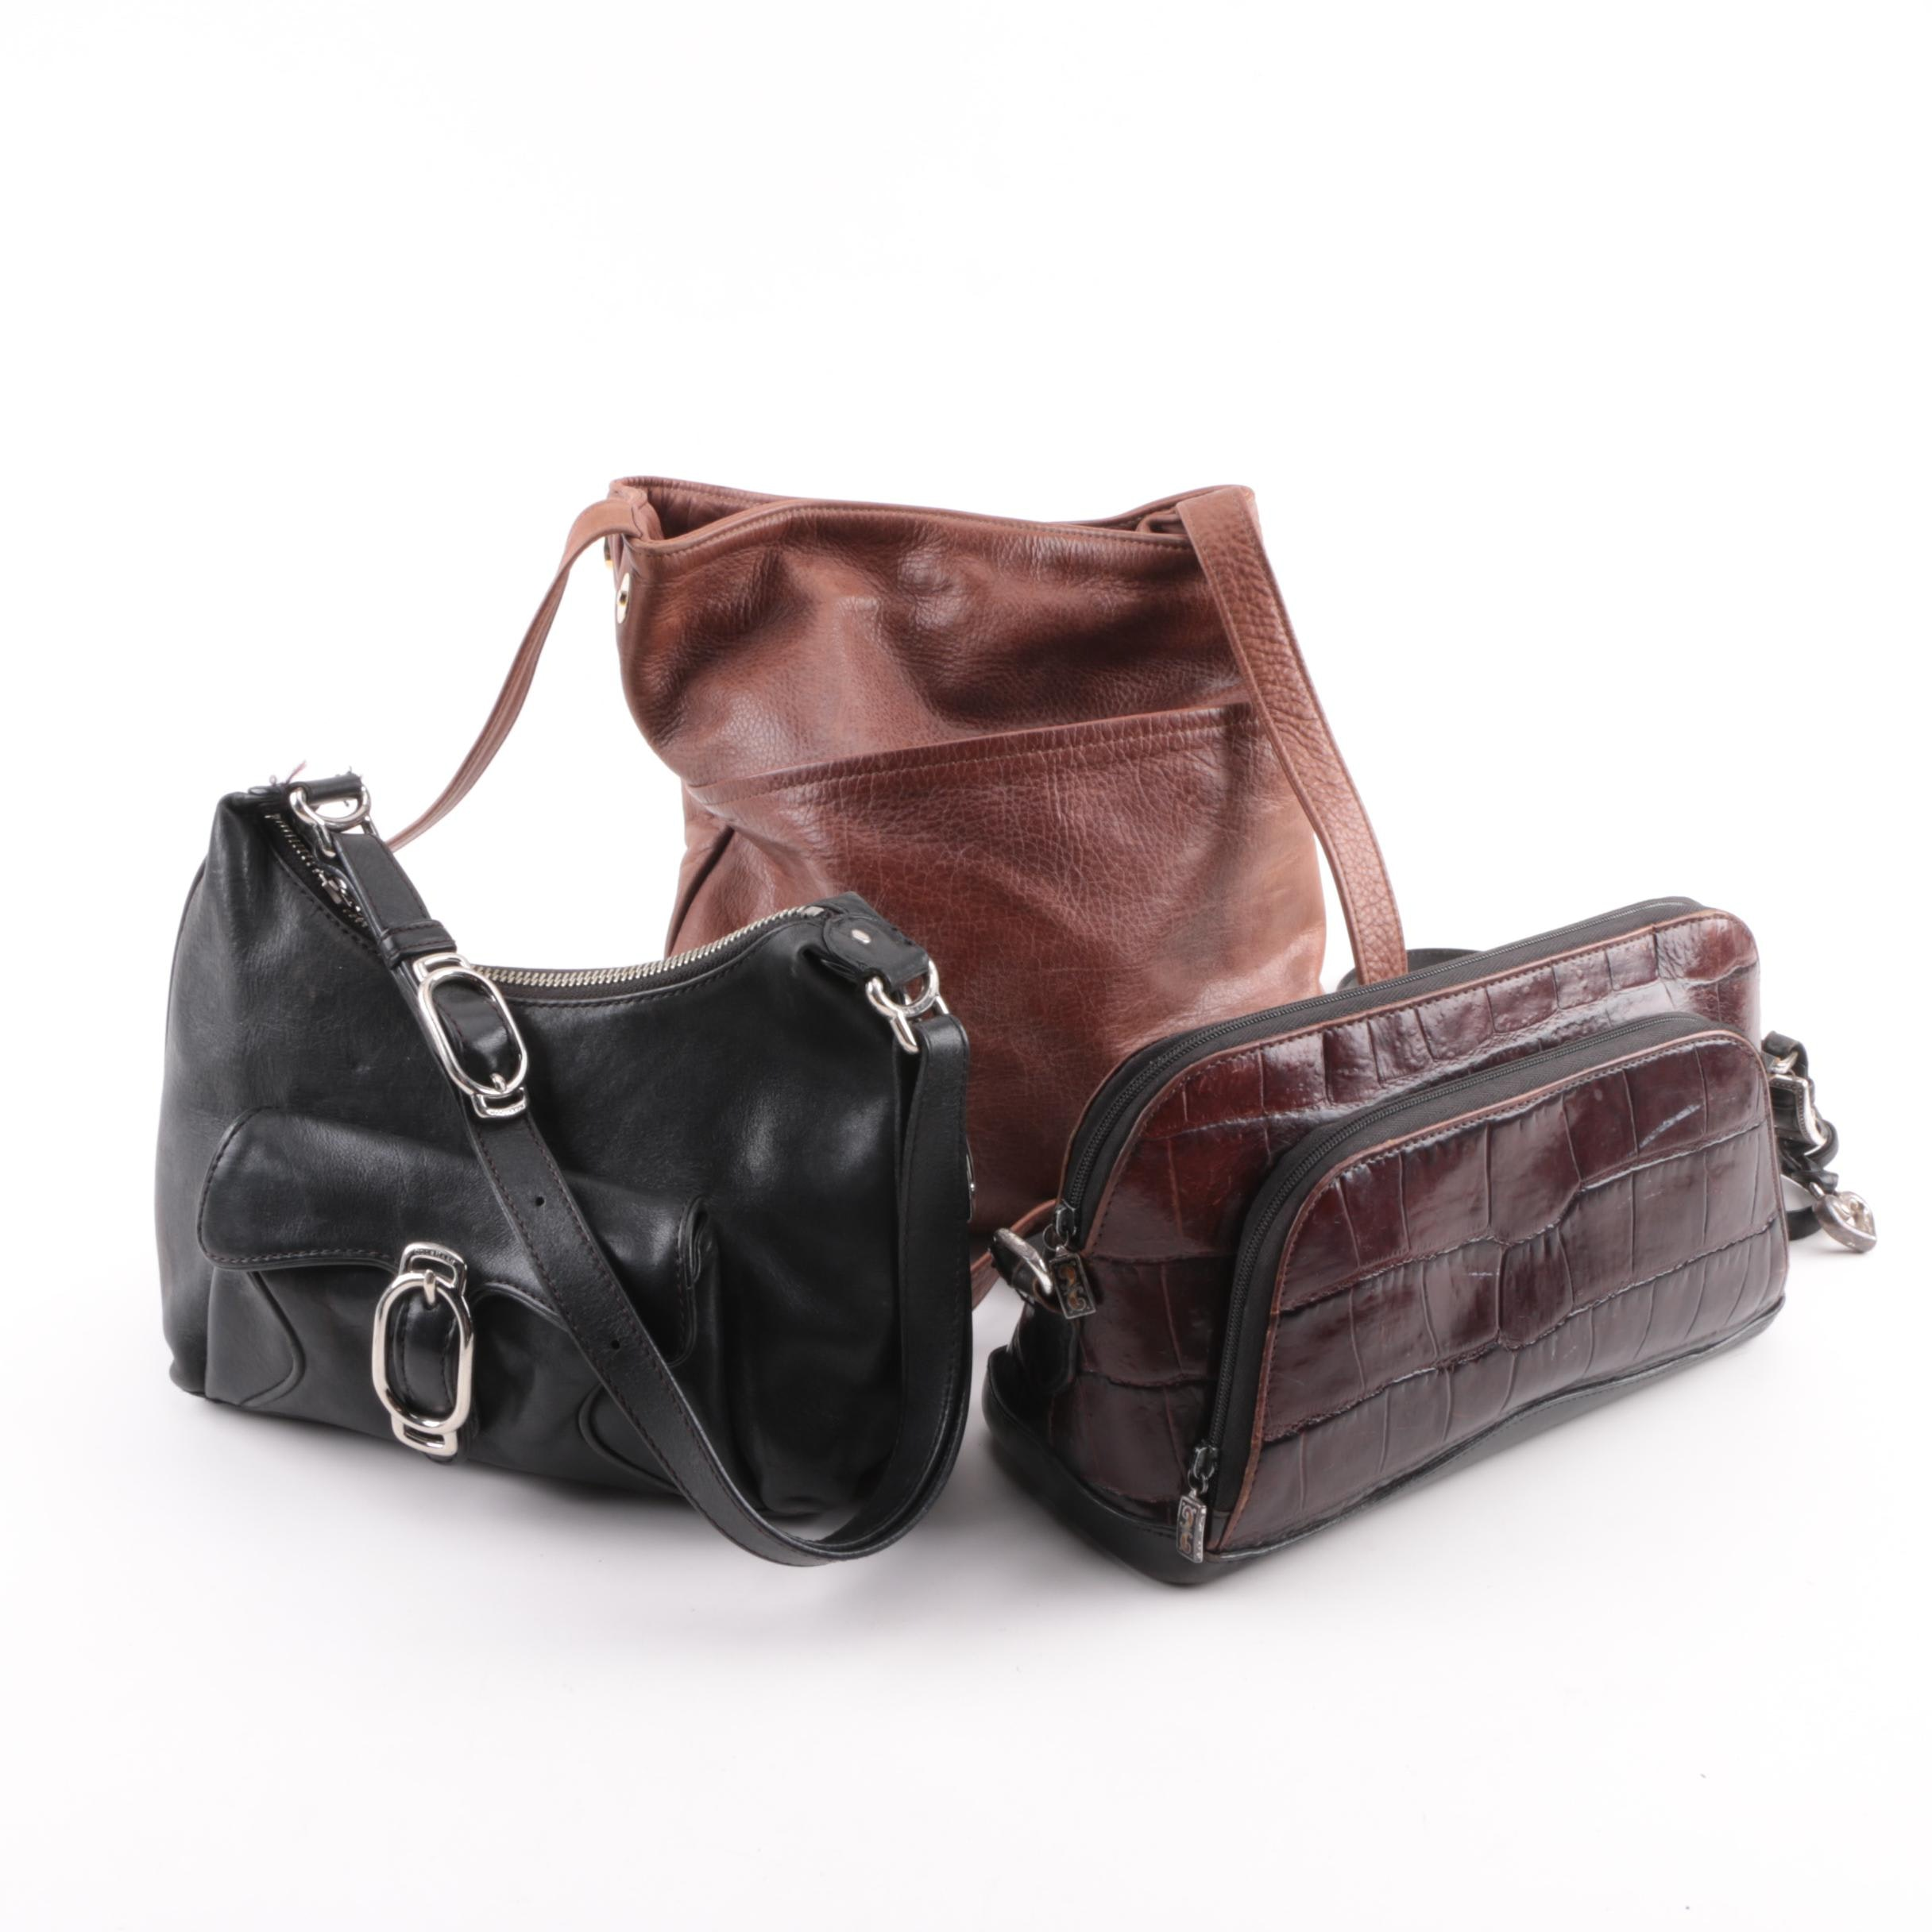 Leather Shoulder Bags Including Brighton and Cole Haan